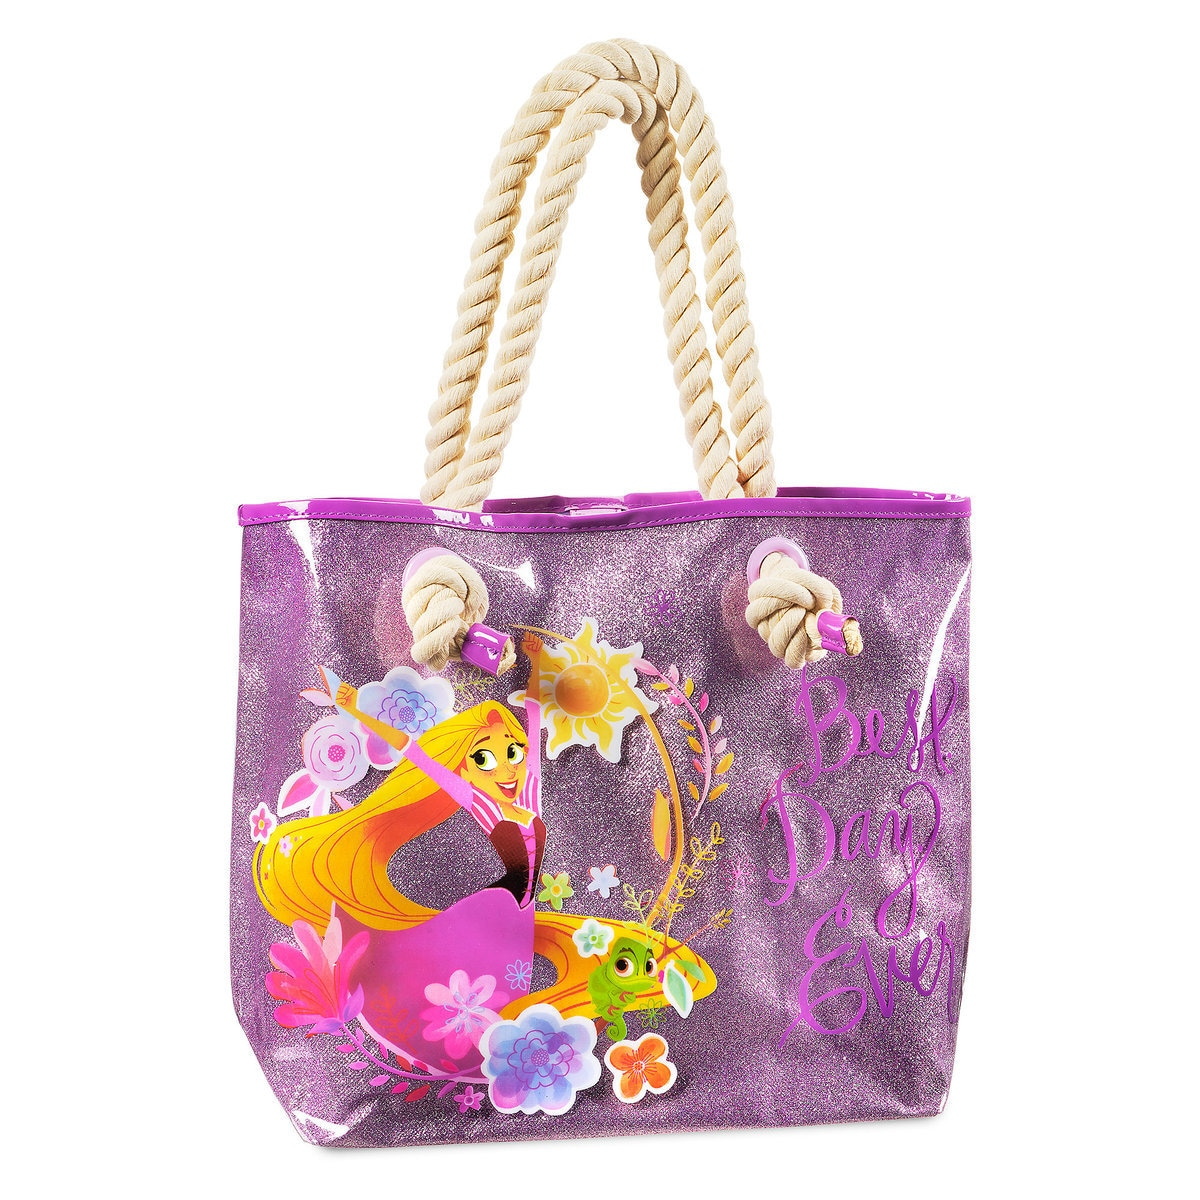 409847ccc38 Product Image of Rapunzel Swim Bag - Tangled  The Series   1